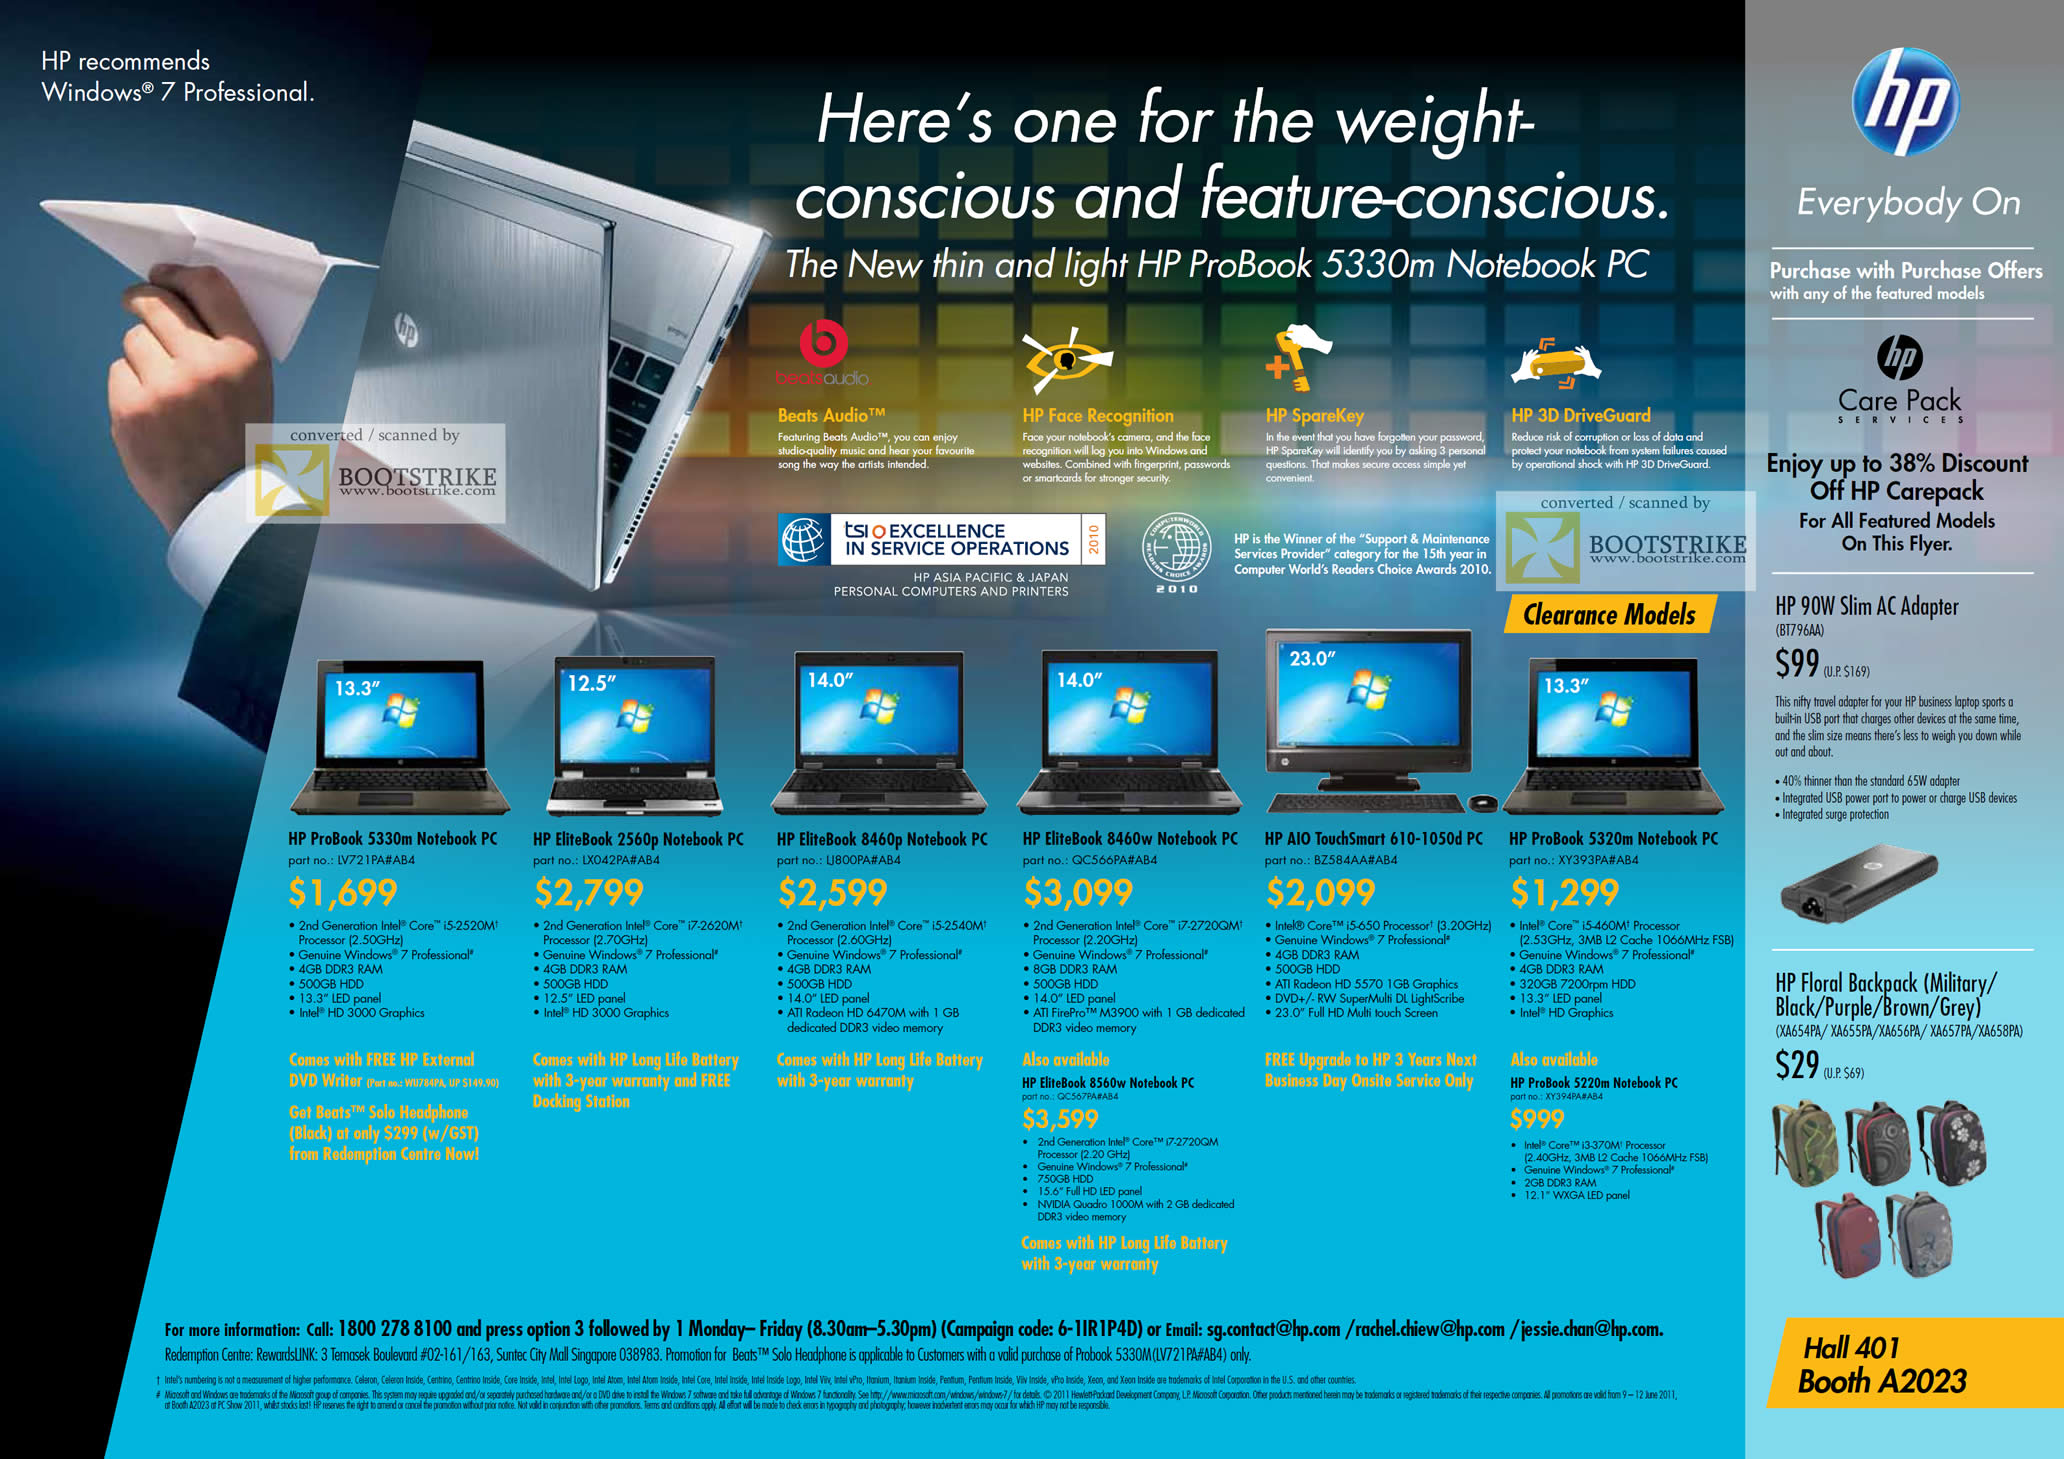 PC Show 2011 price list image brochure of HP Notebooks Desktop PC Business ProBook 5330m EliteBook 2560p 8460p 8460w 8560w AIO TouchSmart 610-1050d 5320m